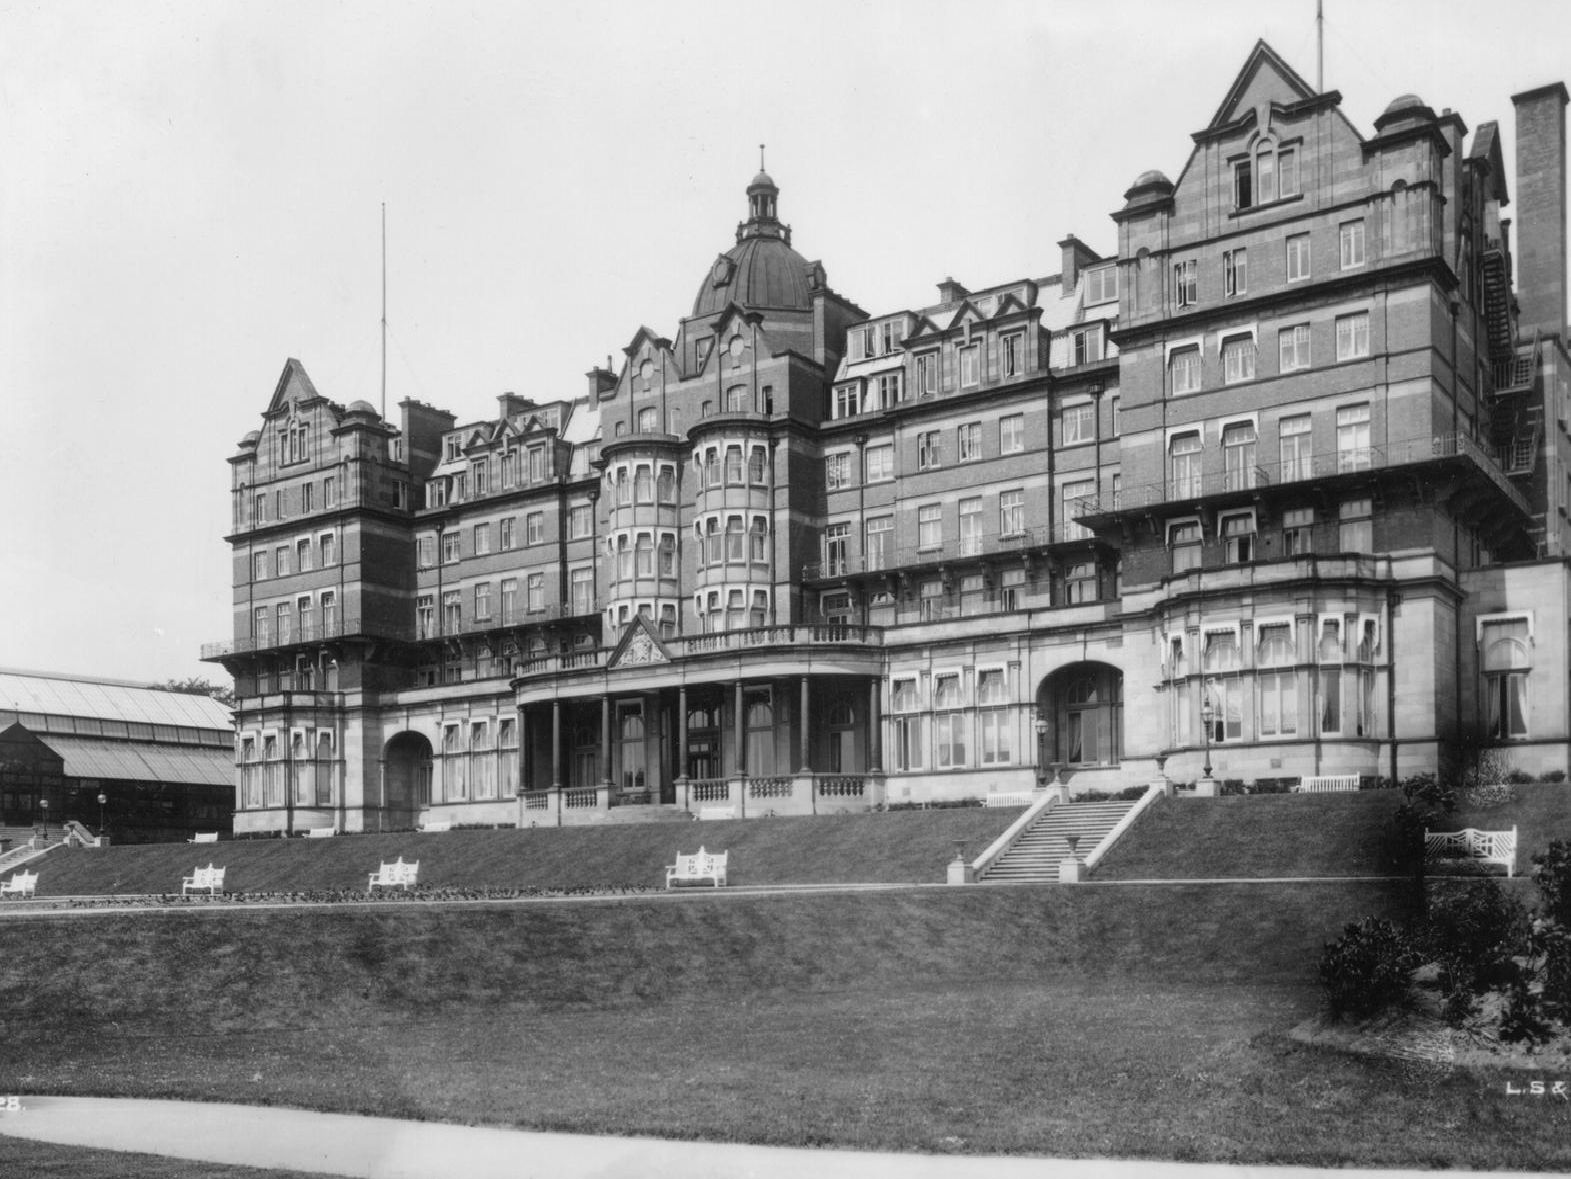 The Hotel Majestic, Harrogate, Yorkshire, circa 1910. (Picture: London Stereoscopic Company/Hulton Archive/Getty Images)